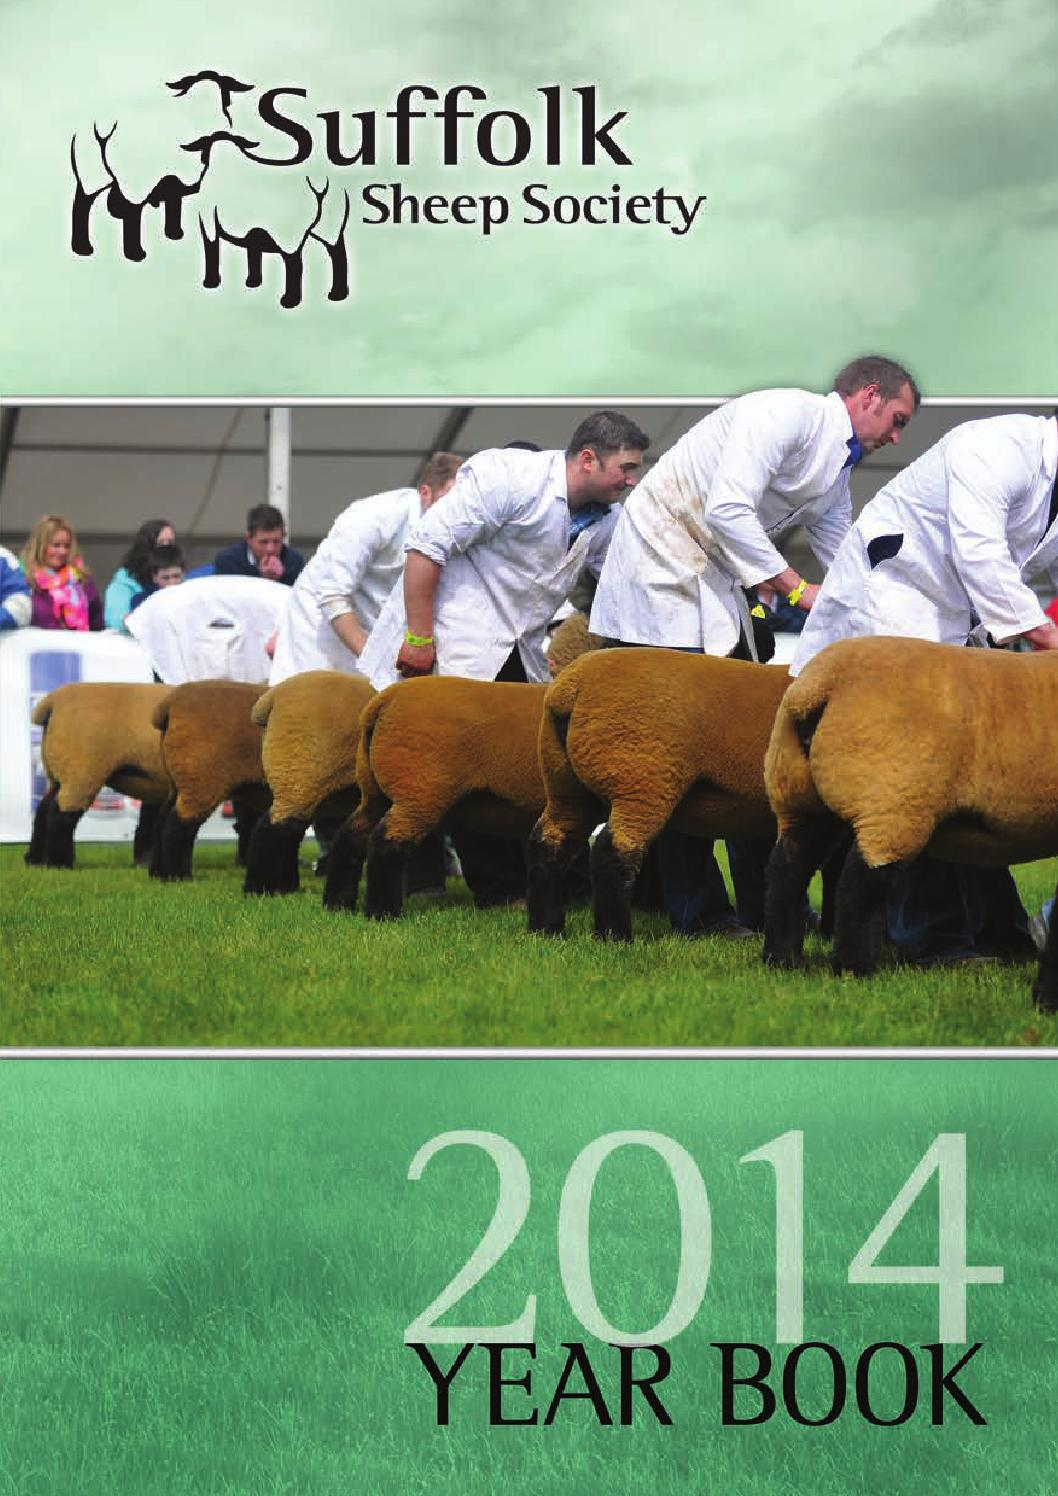 Suffolk Sheep Society Yearbook 2014 by Gale - issuu